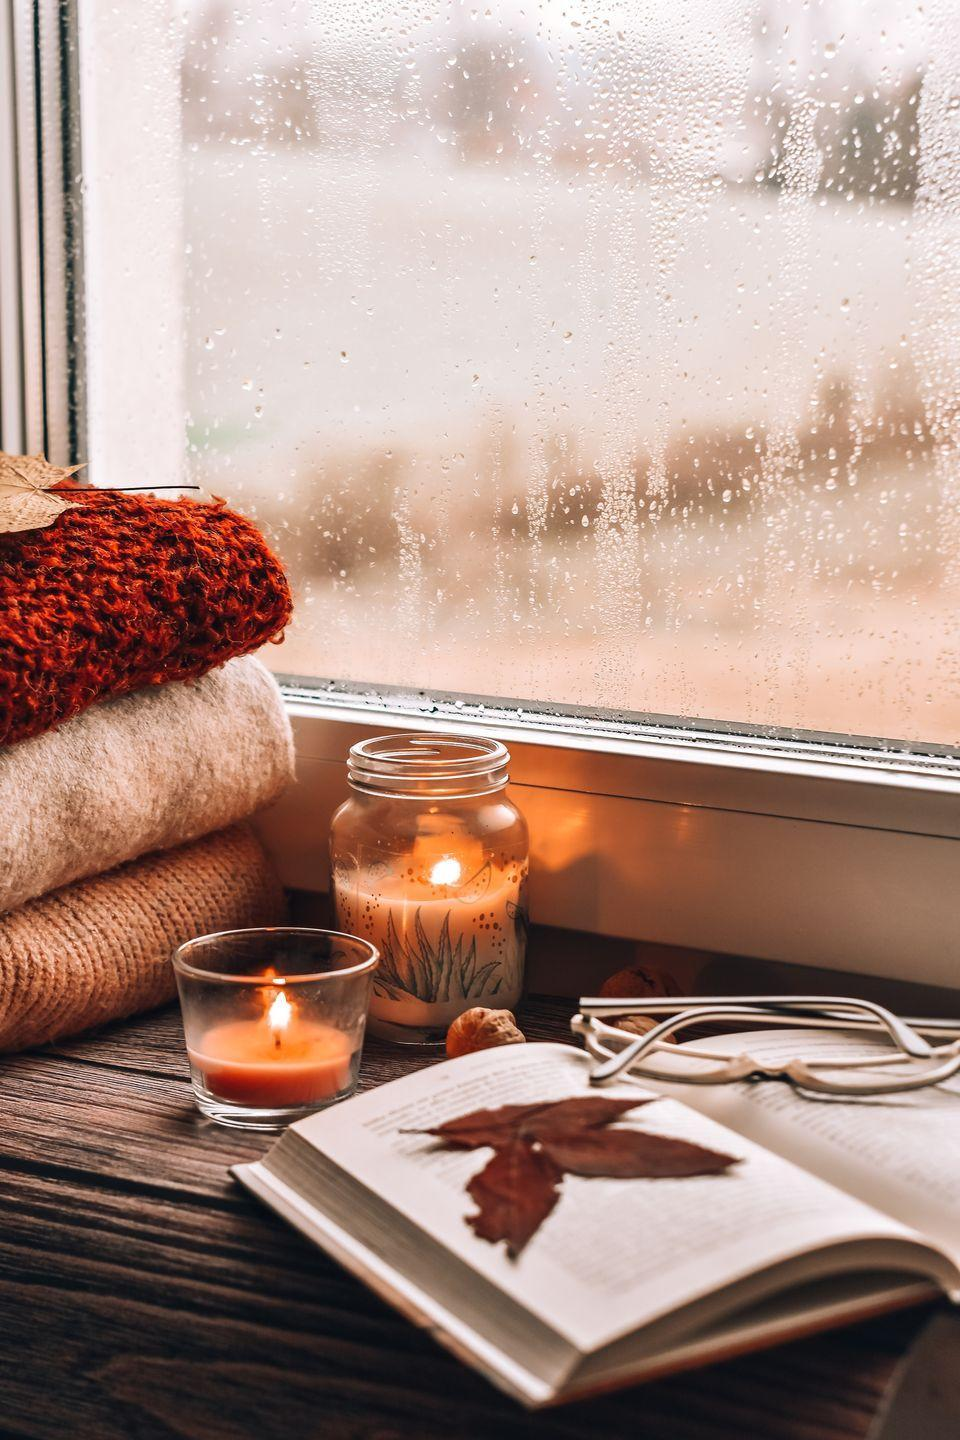 """<p>Soft pajamas, a comforting meal, your favorite Netflix show, and <a href=""""https://www.oprahmag.com/life/g23584712/best-scented-candles/"""" rel=""""nofollow noopener"""" target=""""_blank"""" data-ylk=""""slk:a scented candle"""" class=""""link rapid-noclick-resp"""">a scented candle</a>... what more could you possibly need? </p>"""